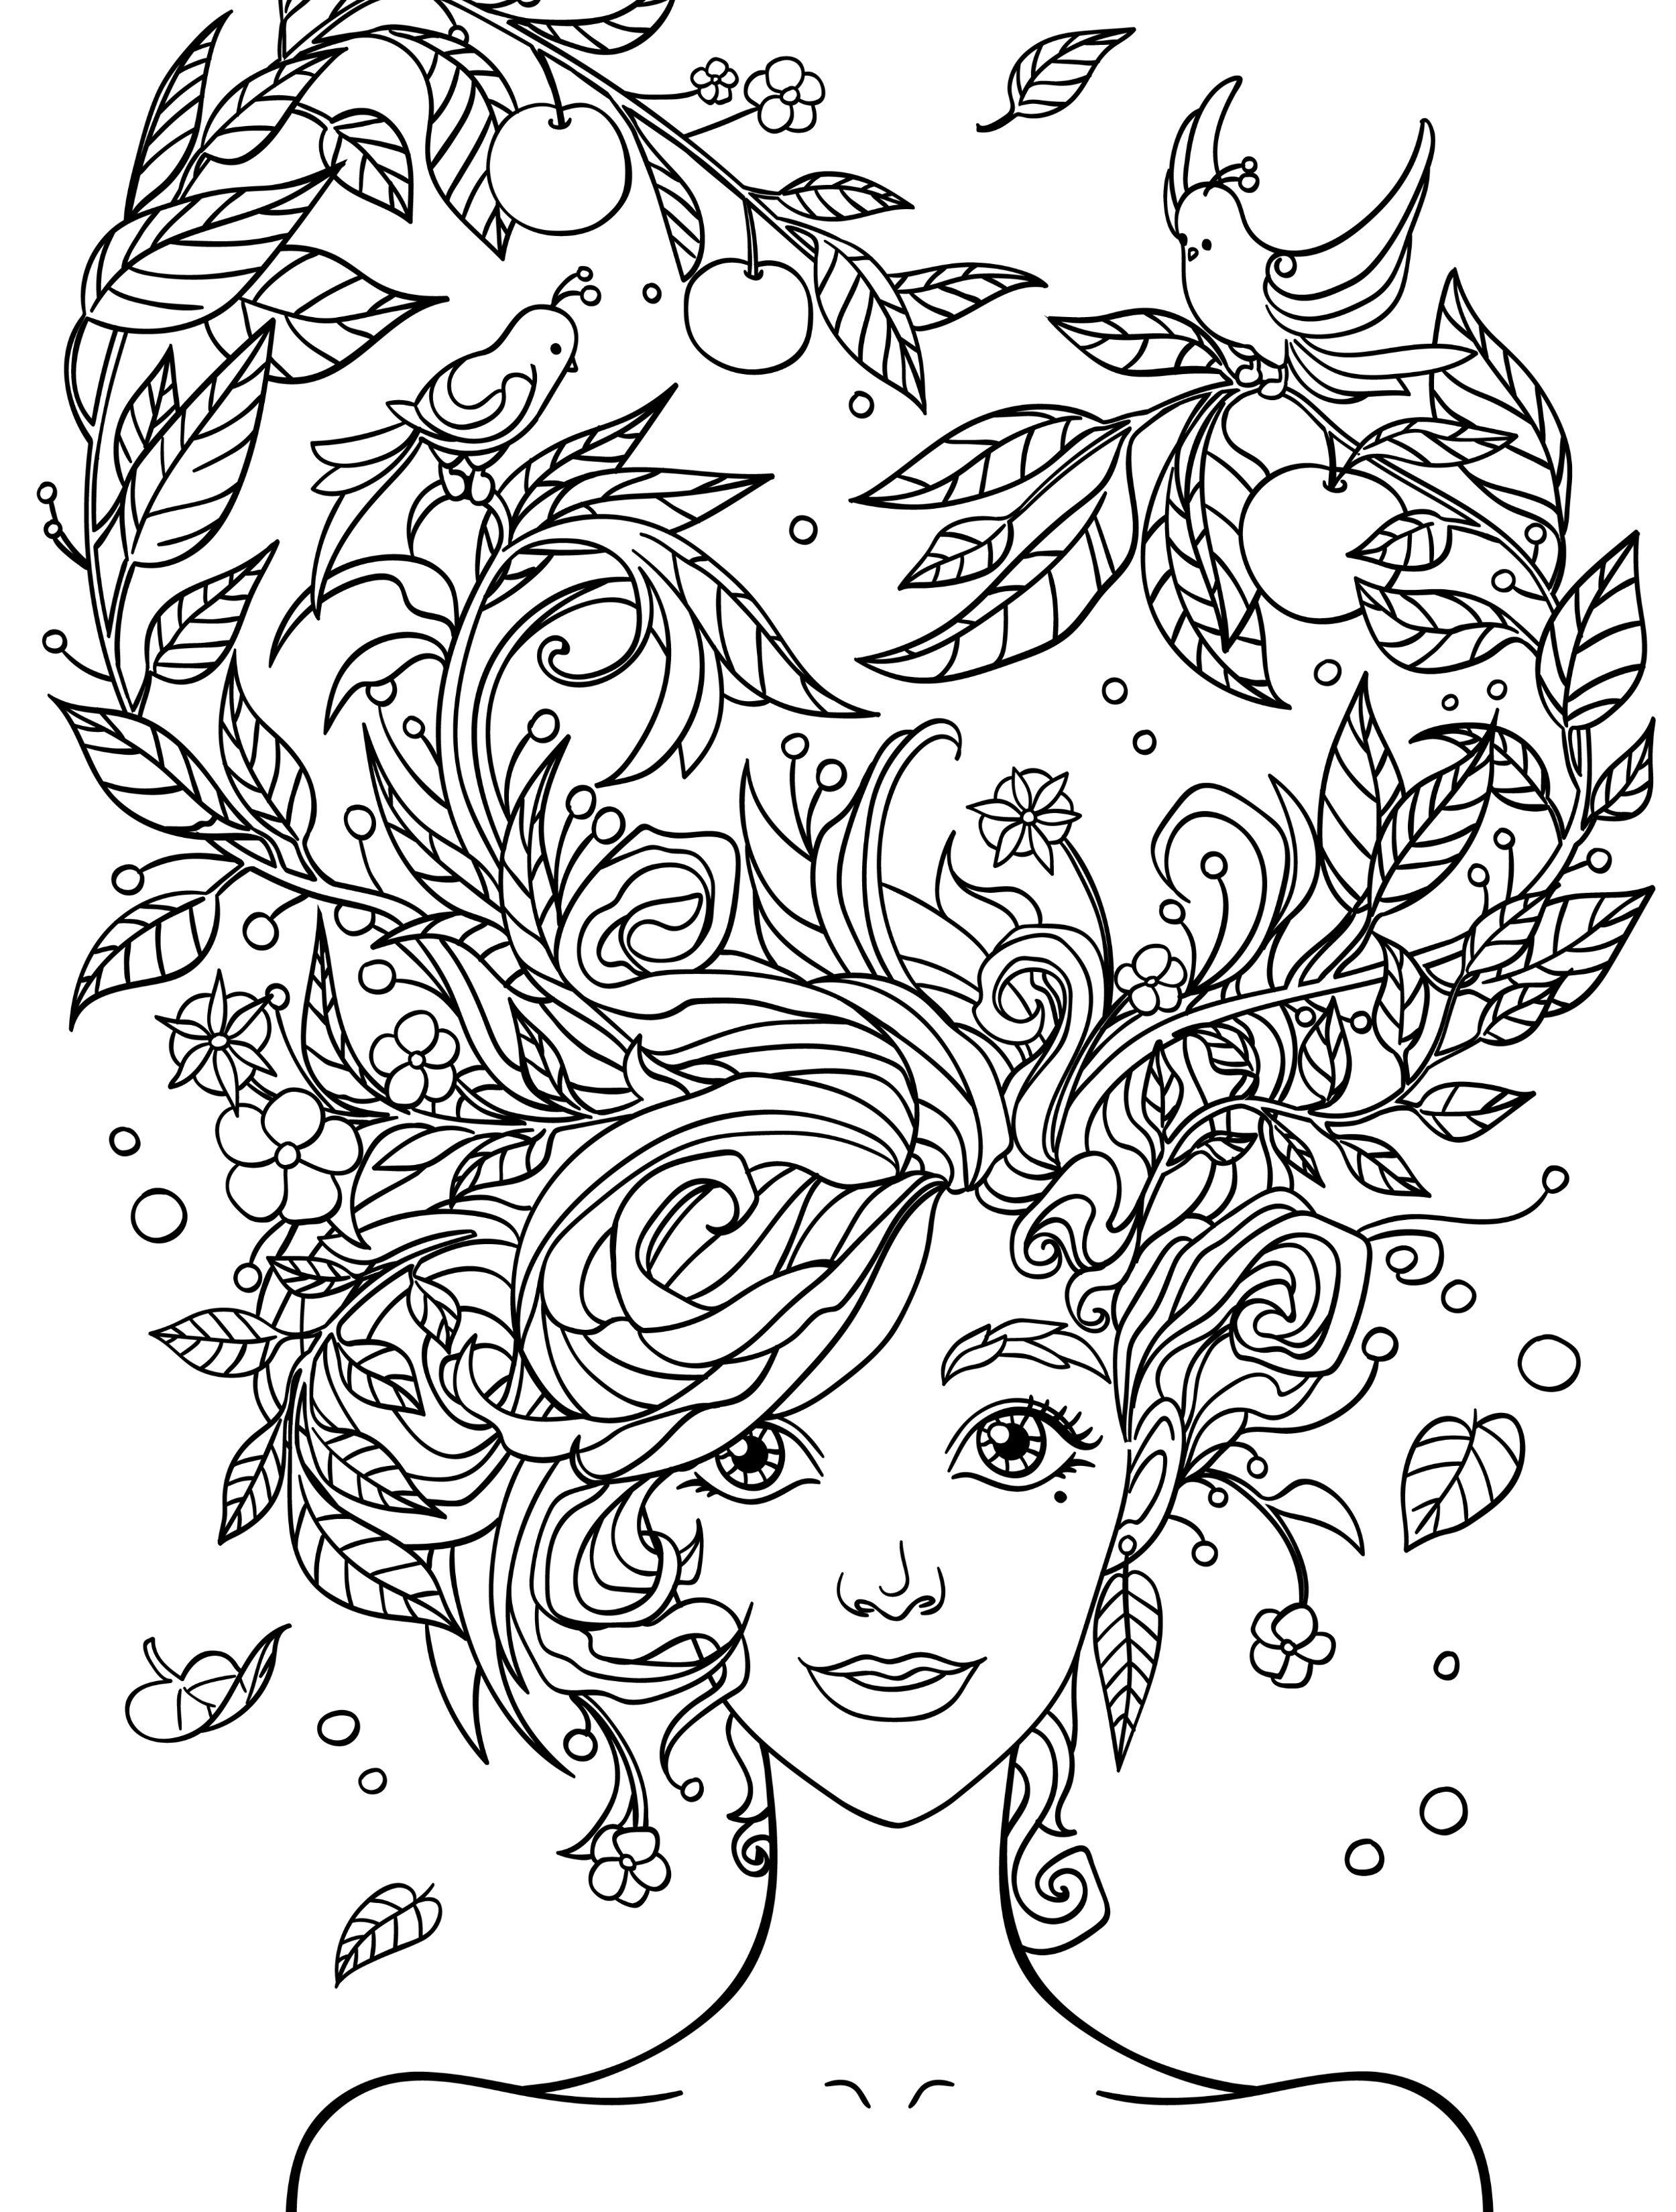 Pretty Coloring Pages For Adults Free Printable | People Coloring - Free Printable Coloring Book Pages For Adults